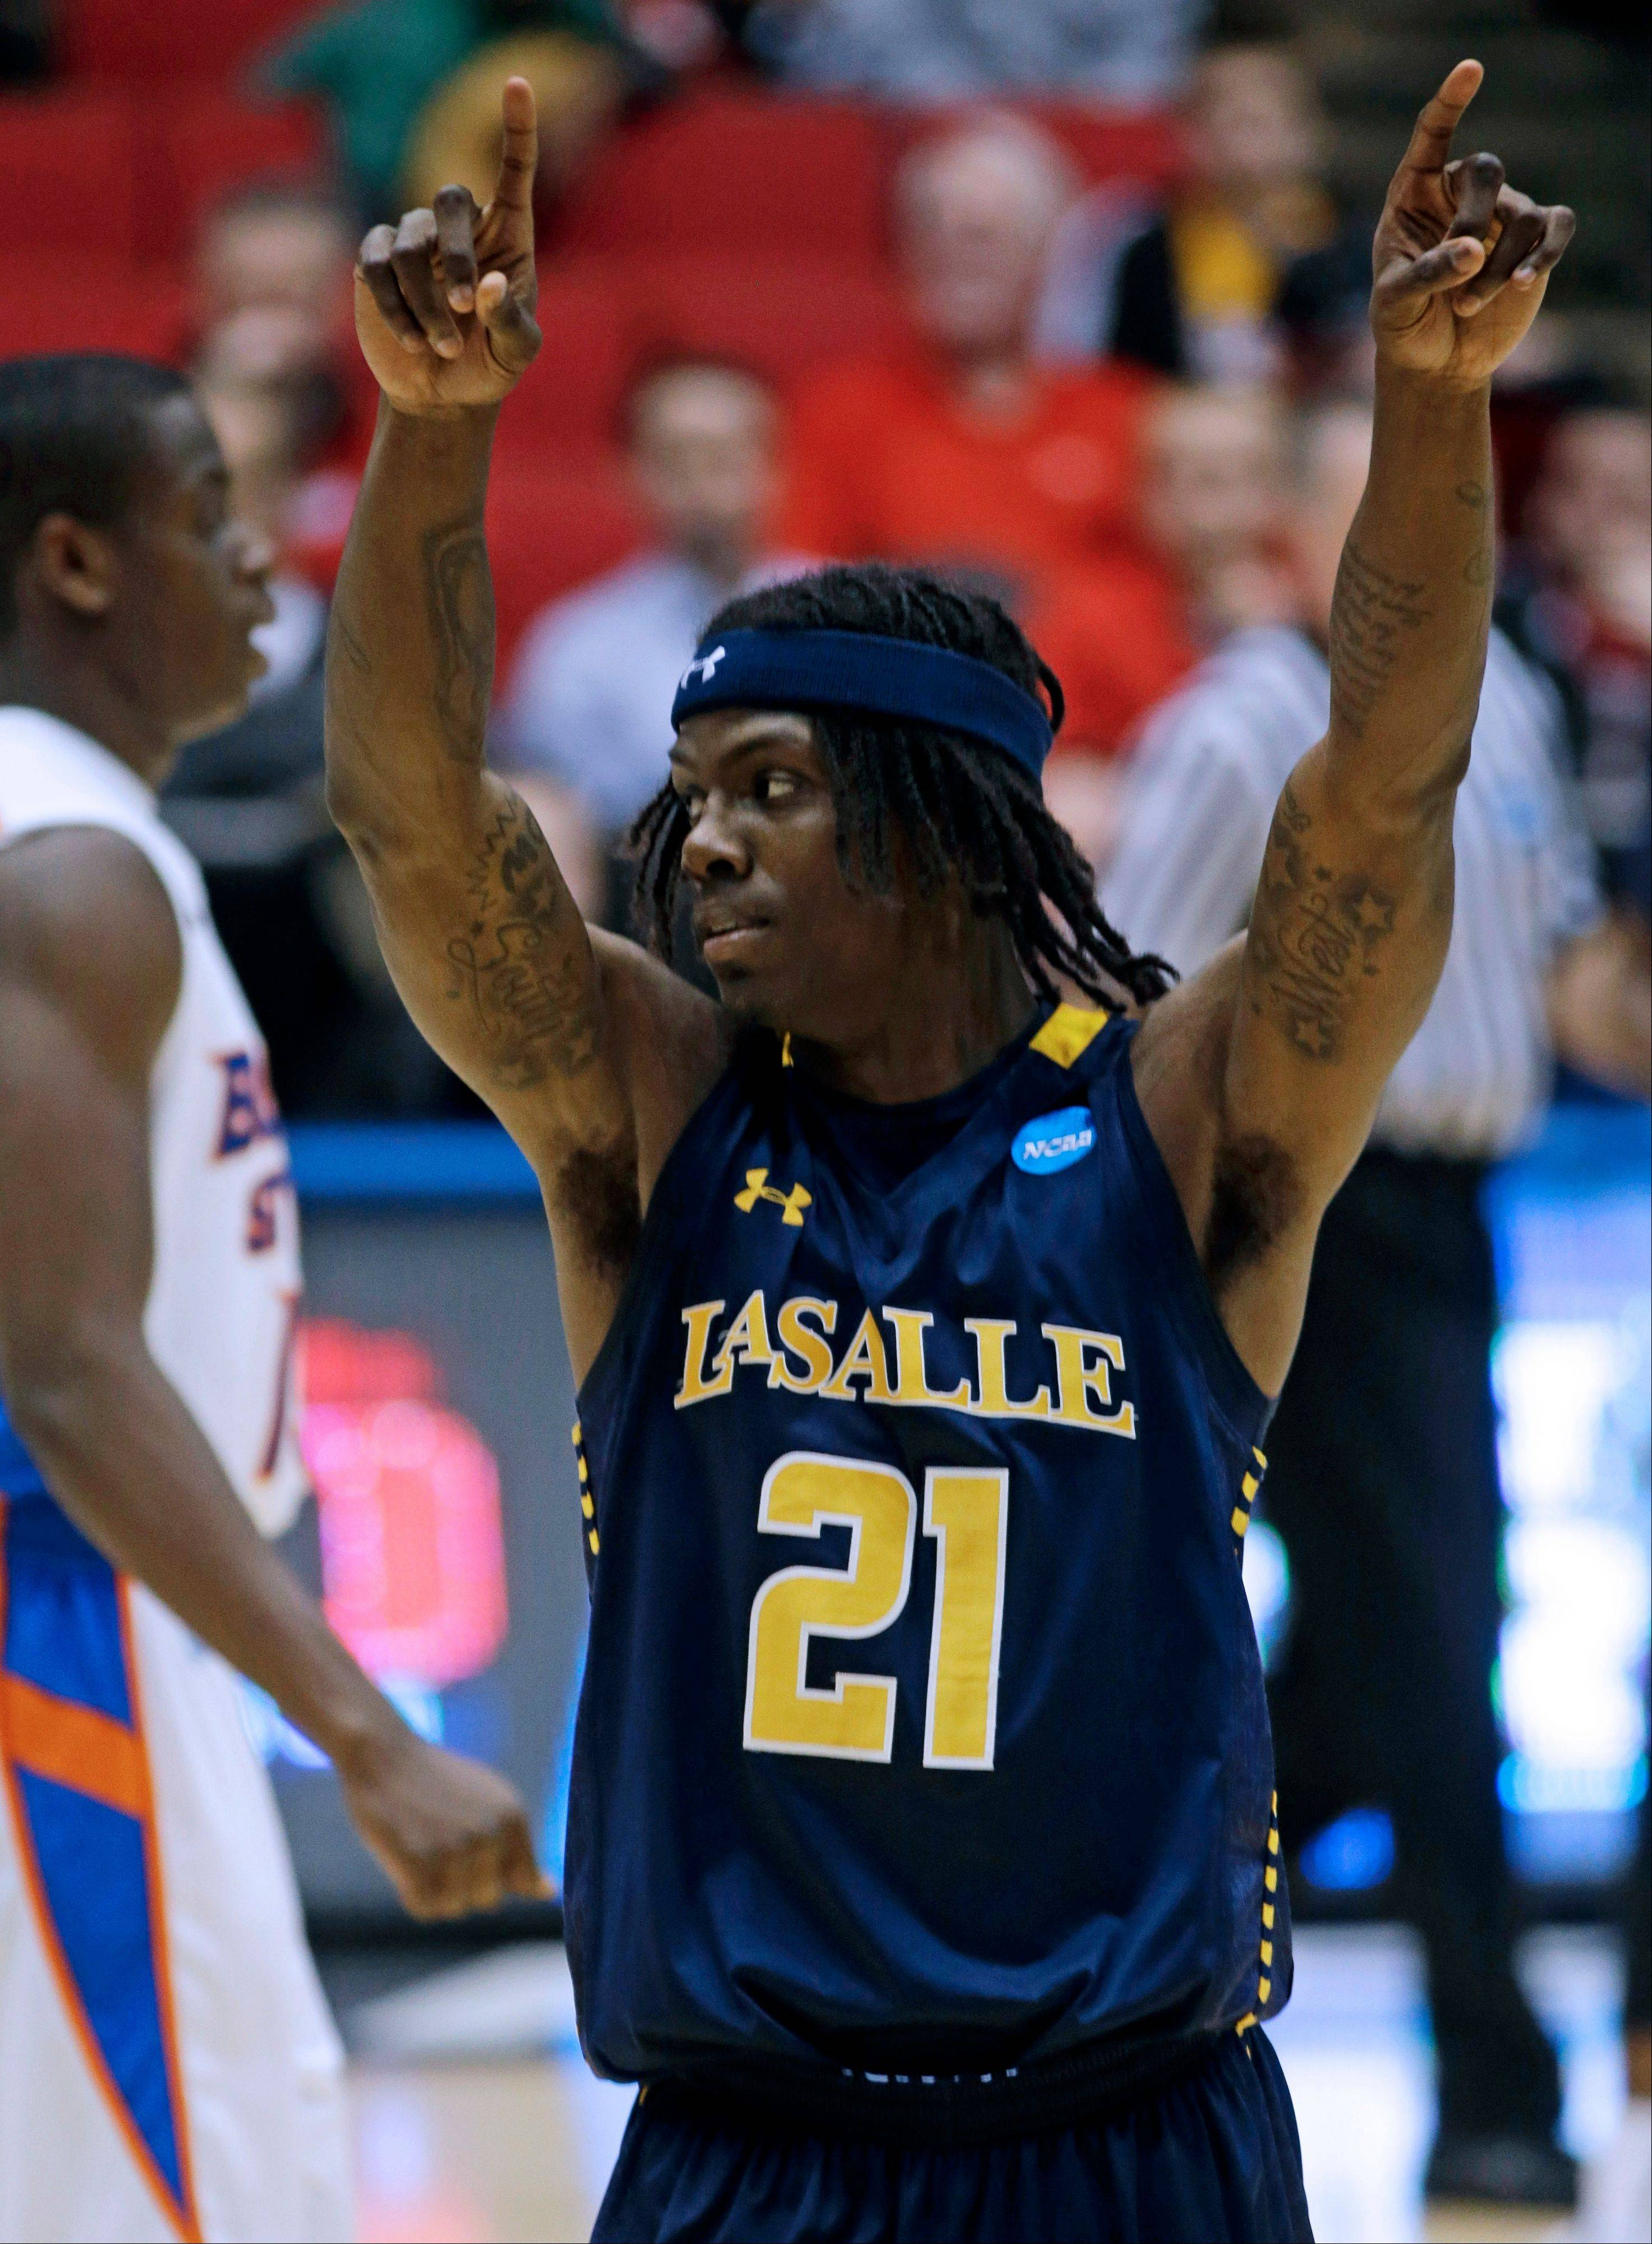 La Salle guard Tyrone Garland (21) celebrates after defeating Boise State 80-71 in a first-round game of the NCAA college basketball tournament, Wednesday, March 20, 2013, in Dayton, Ohio. Garland led La Salle with 22 points. (AP Photo/Al Behrman)